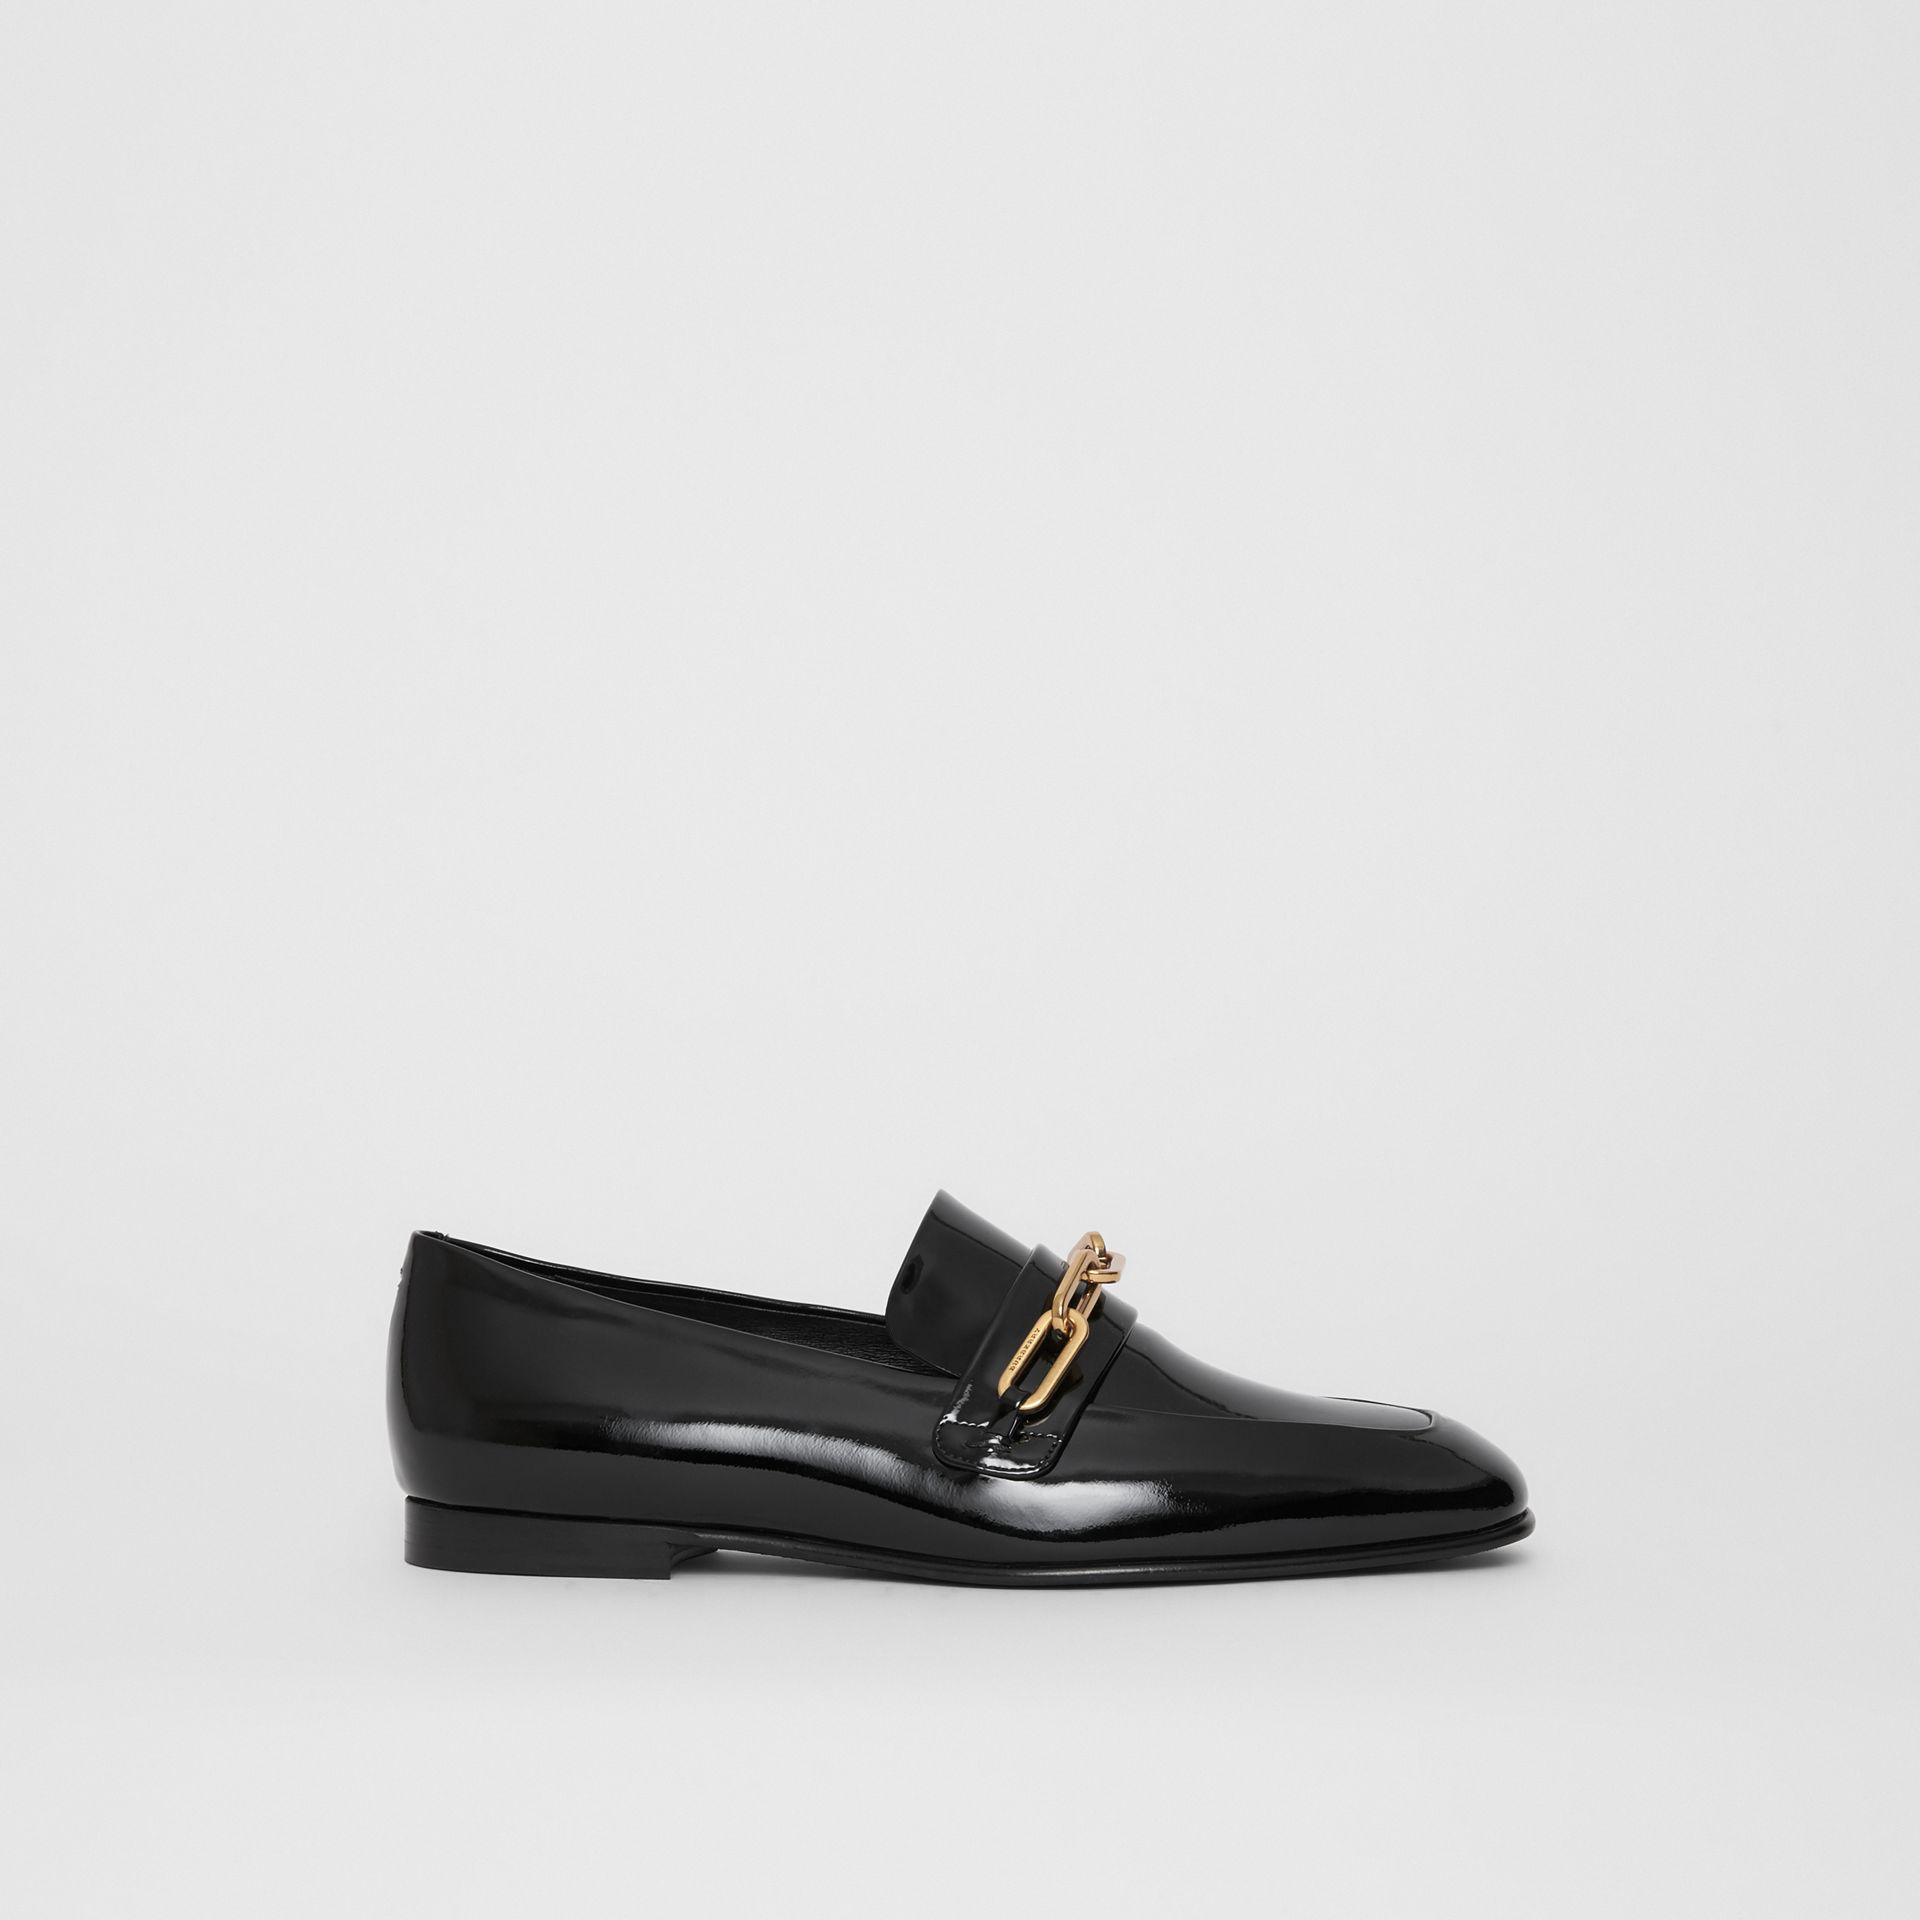 Link Detail Patent Leather Loafers in Black - Women | Burberry - gallery image 5